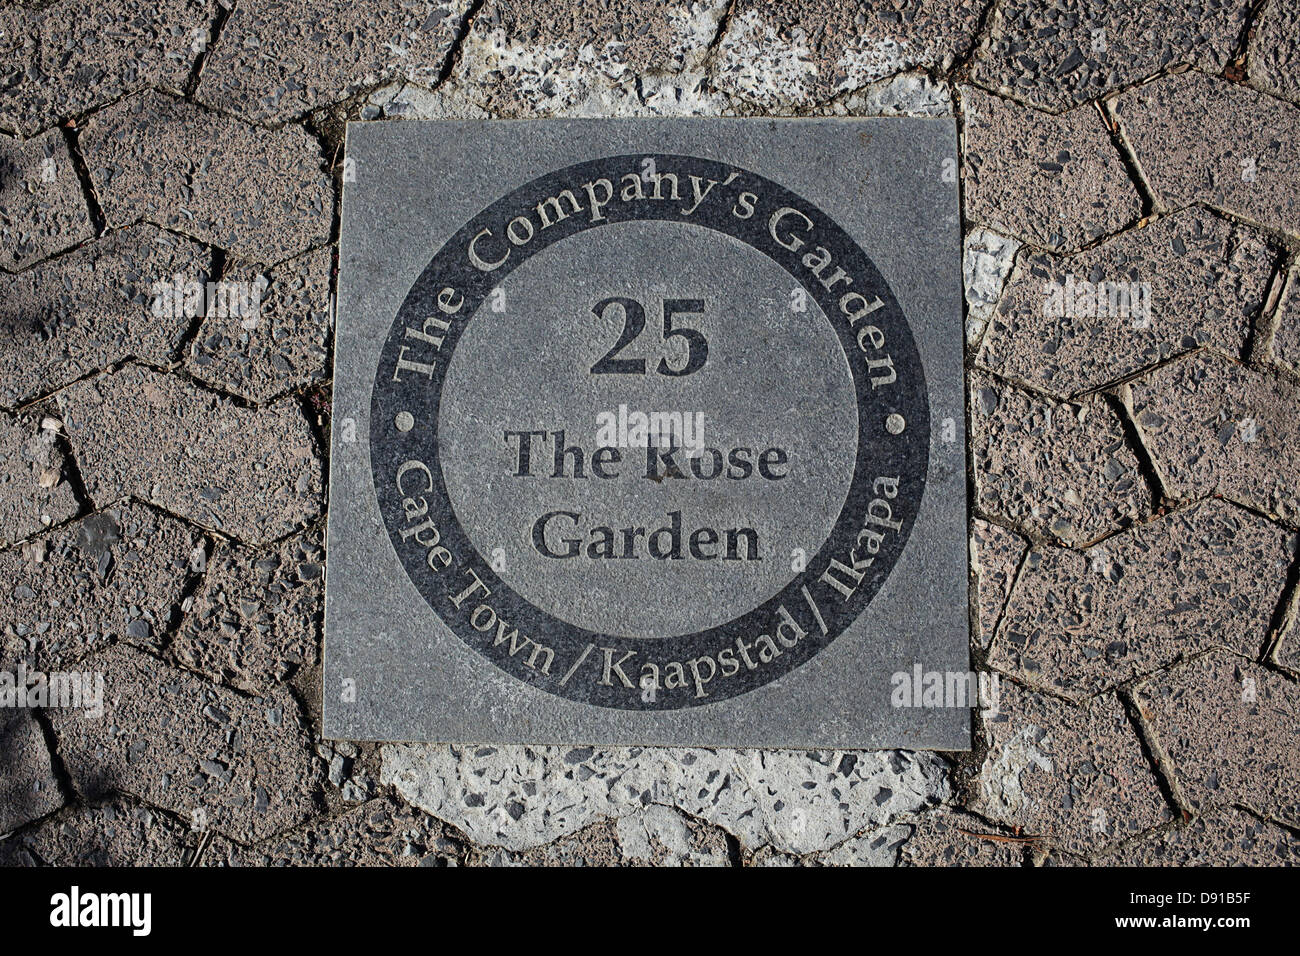 Plaque in the Rose Gardens, Cape Town - Stock Image